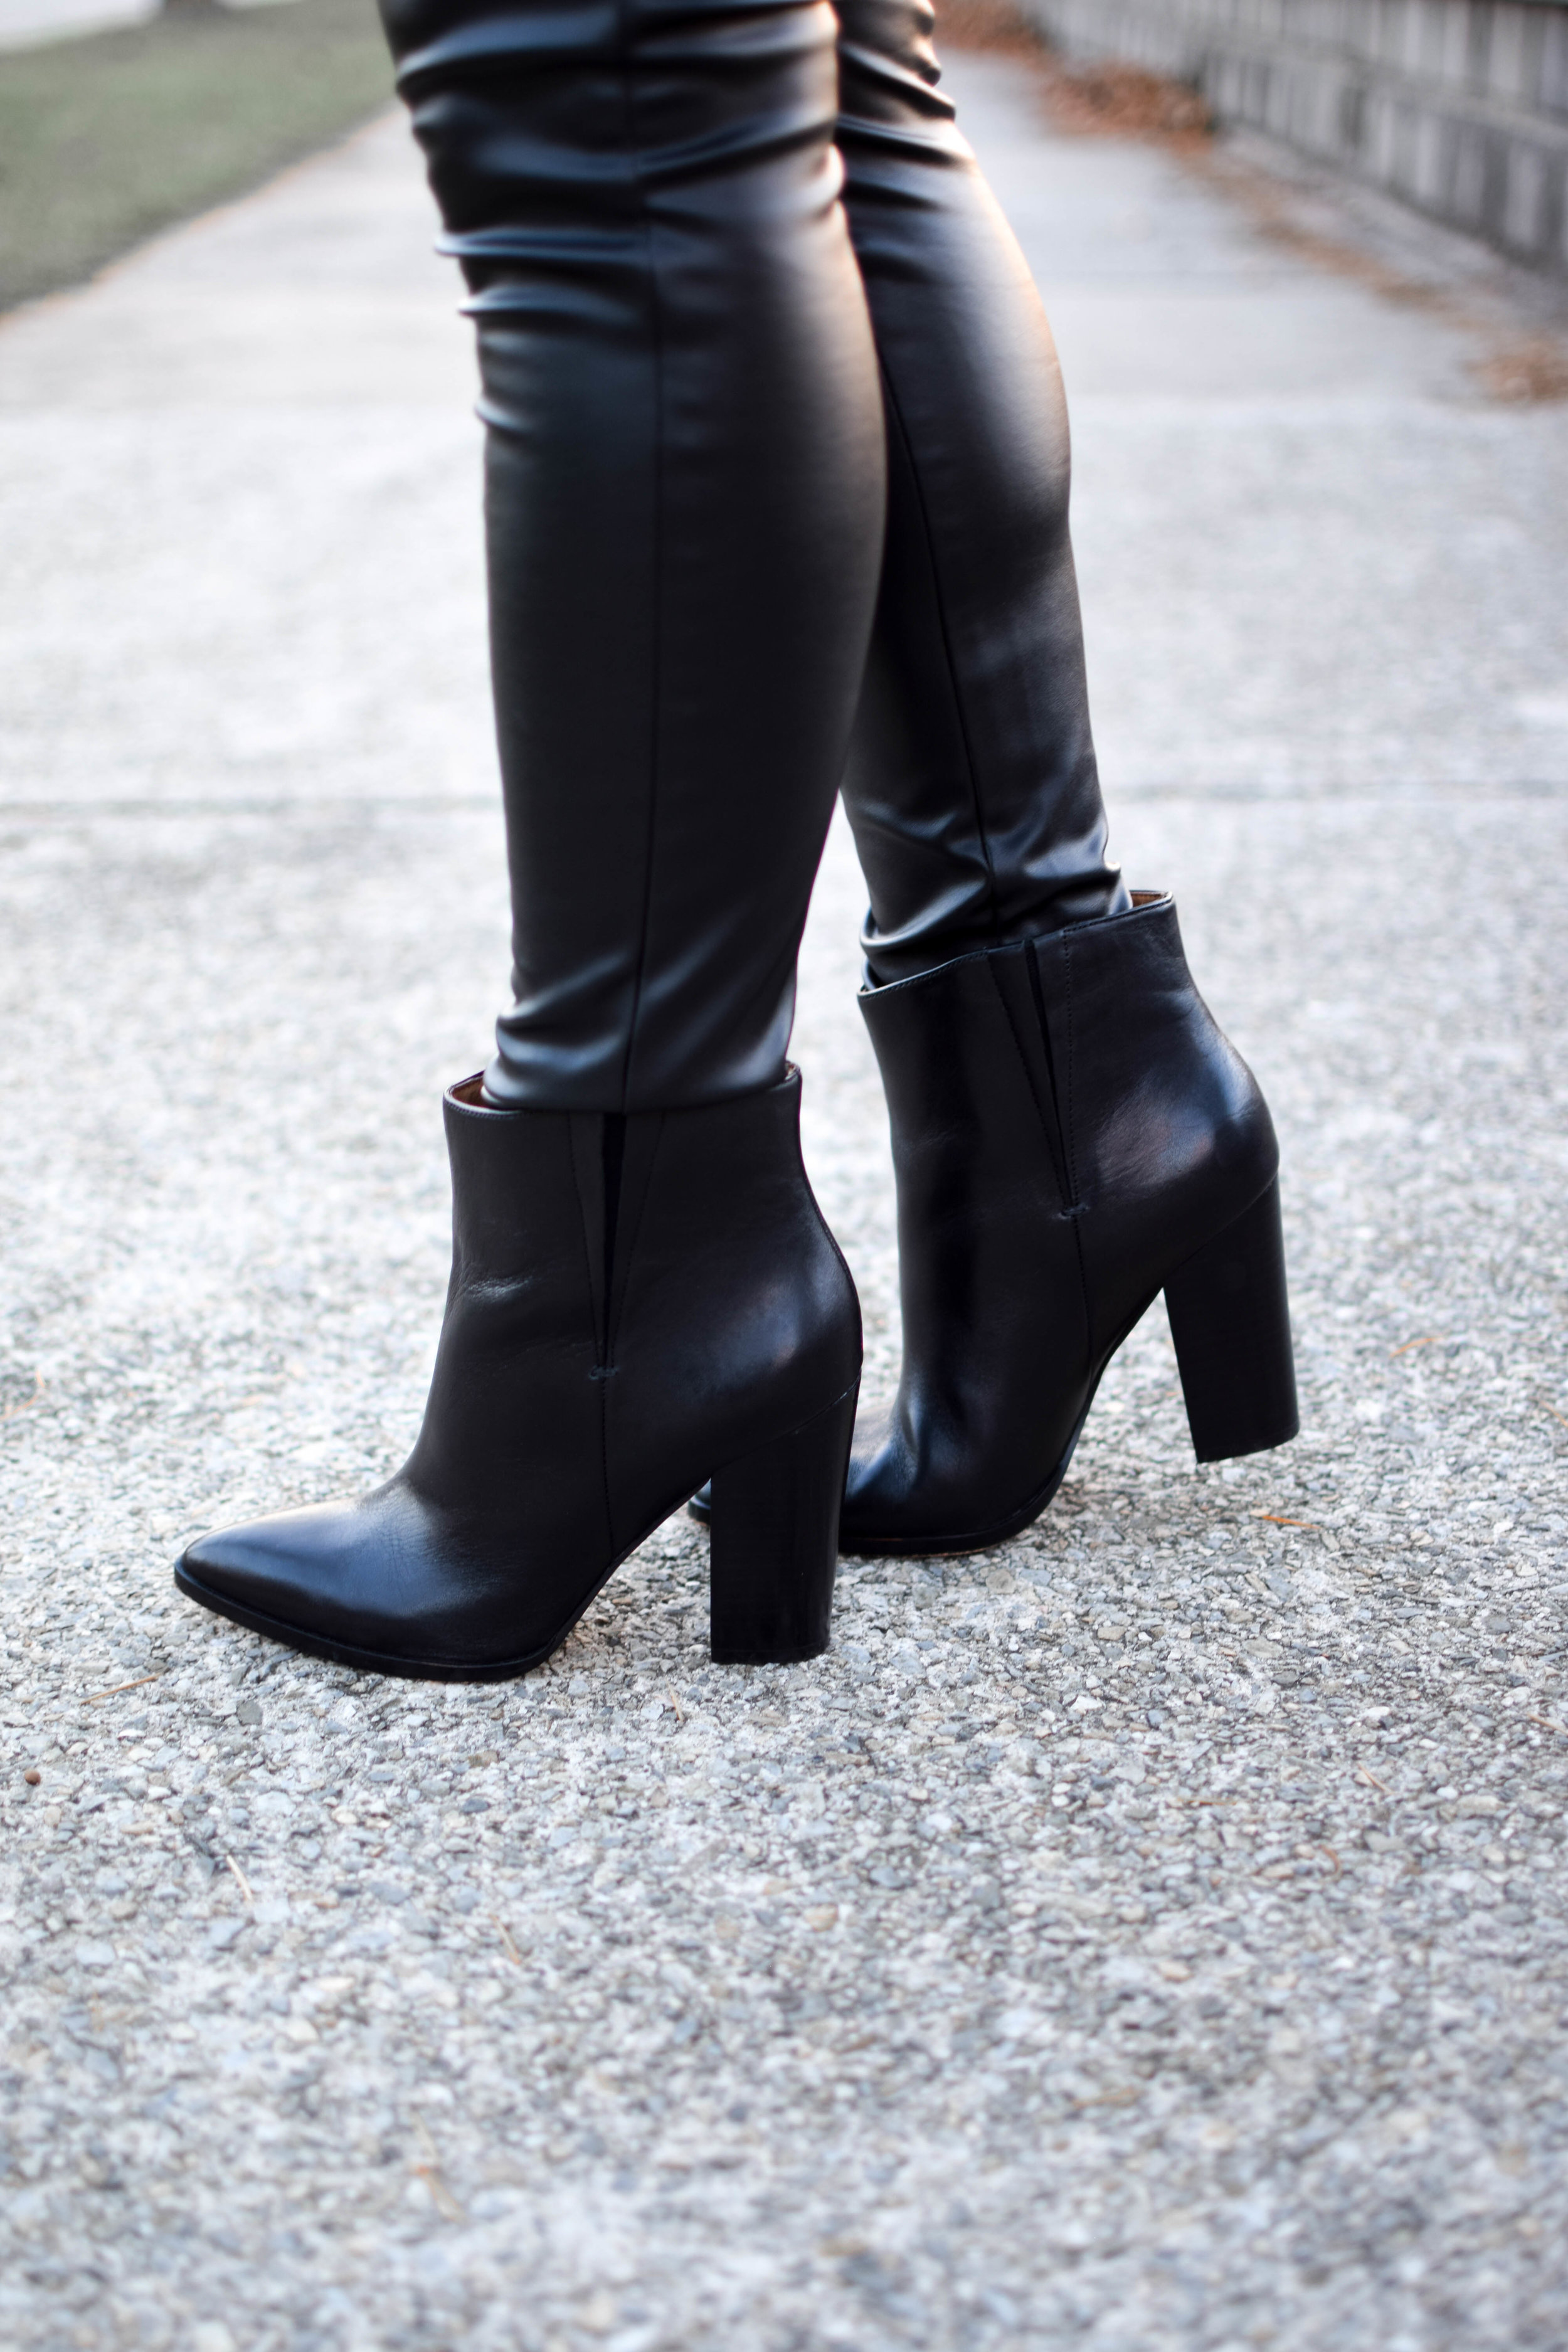 Holiday Outfit Idea #1: Velvet | Pine Barren Beauty | winter fashion, winter style, holiday fashion, pointed toe booties, black leather booties